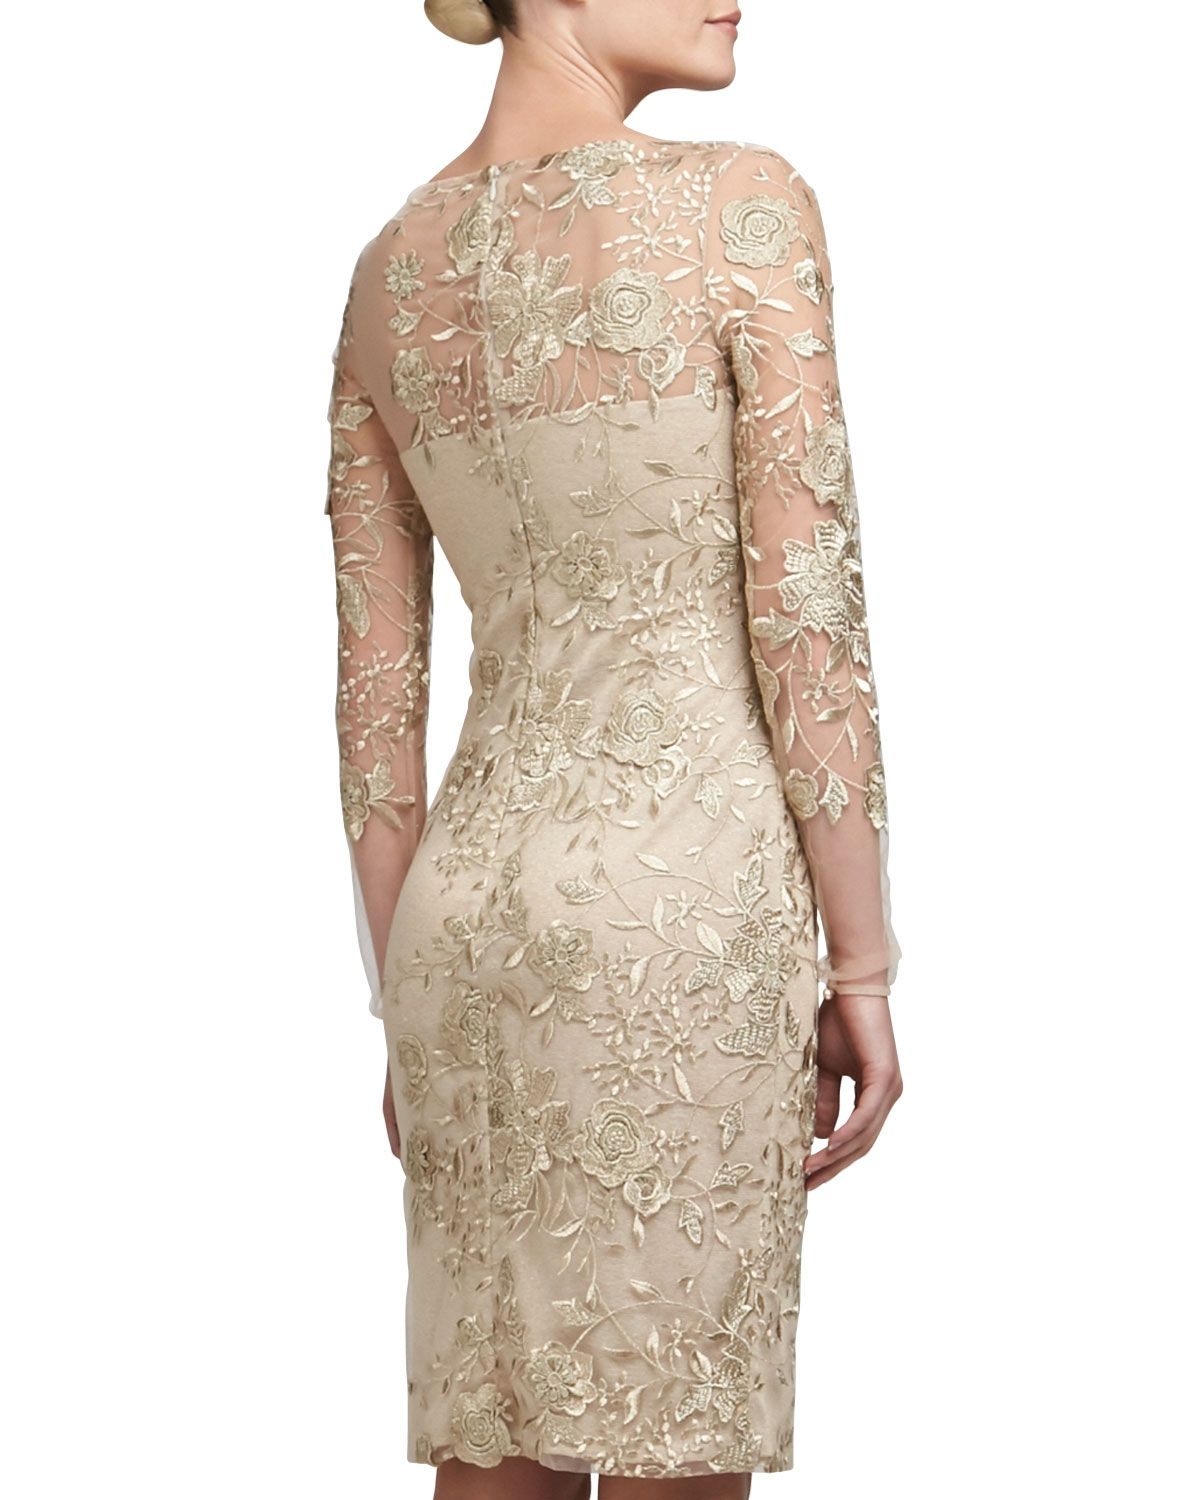 bf022d99410 David Meister Embroidered Lace Cocktail Dress - Neiman Marcus